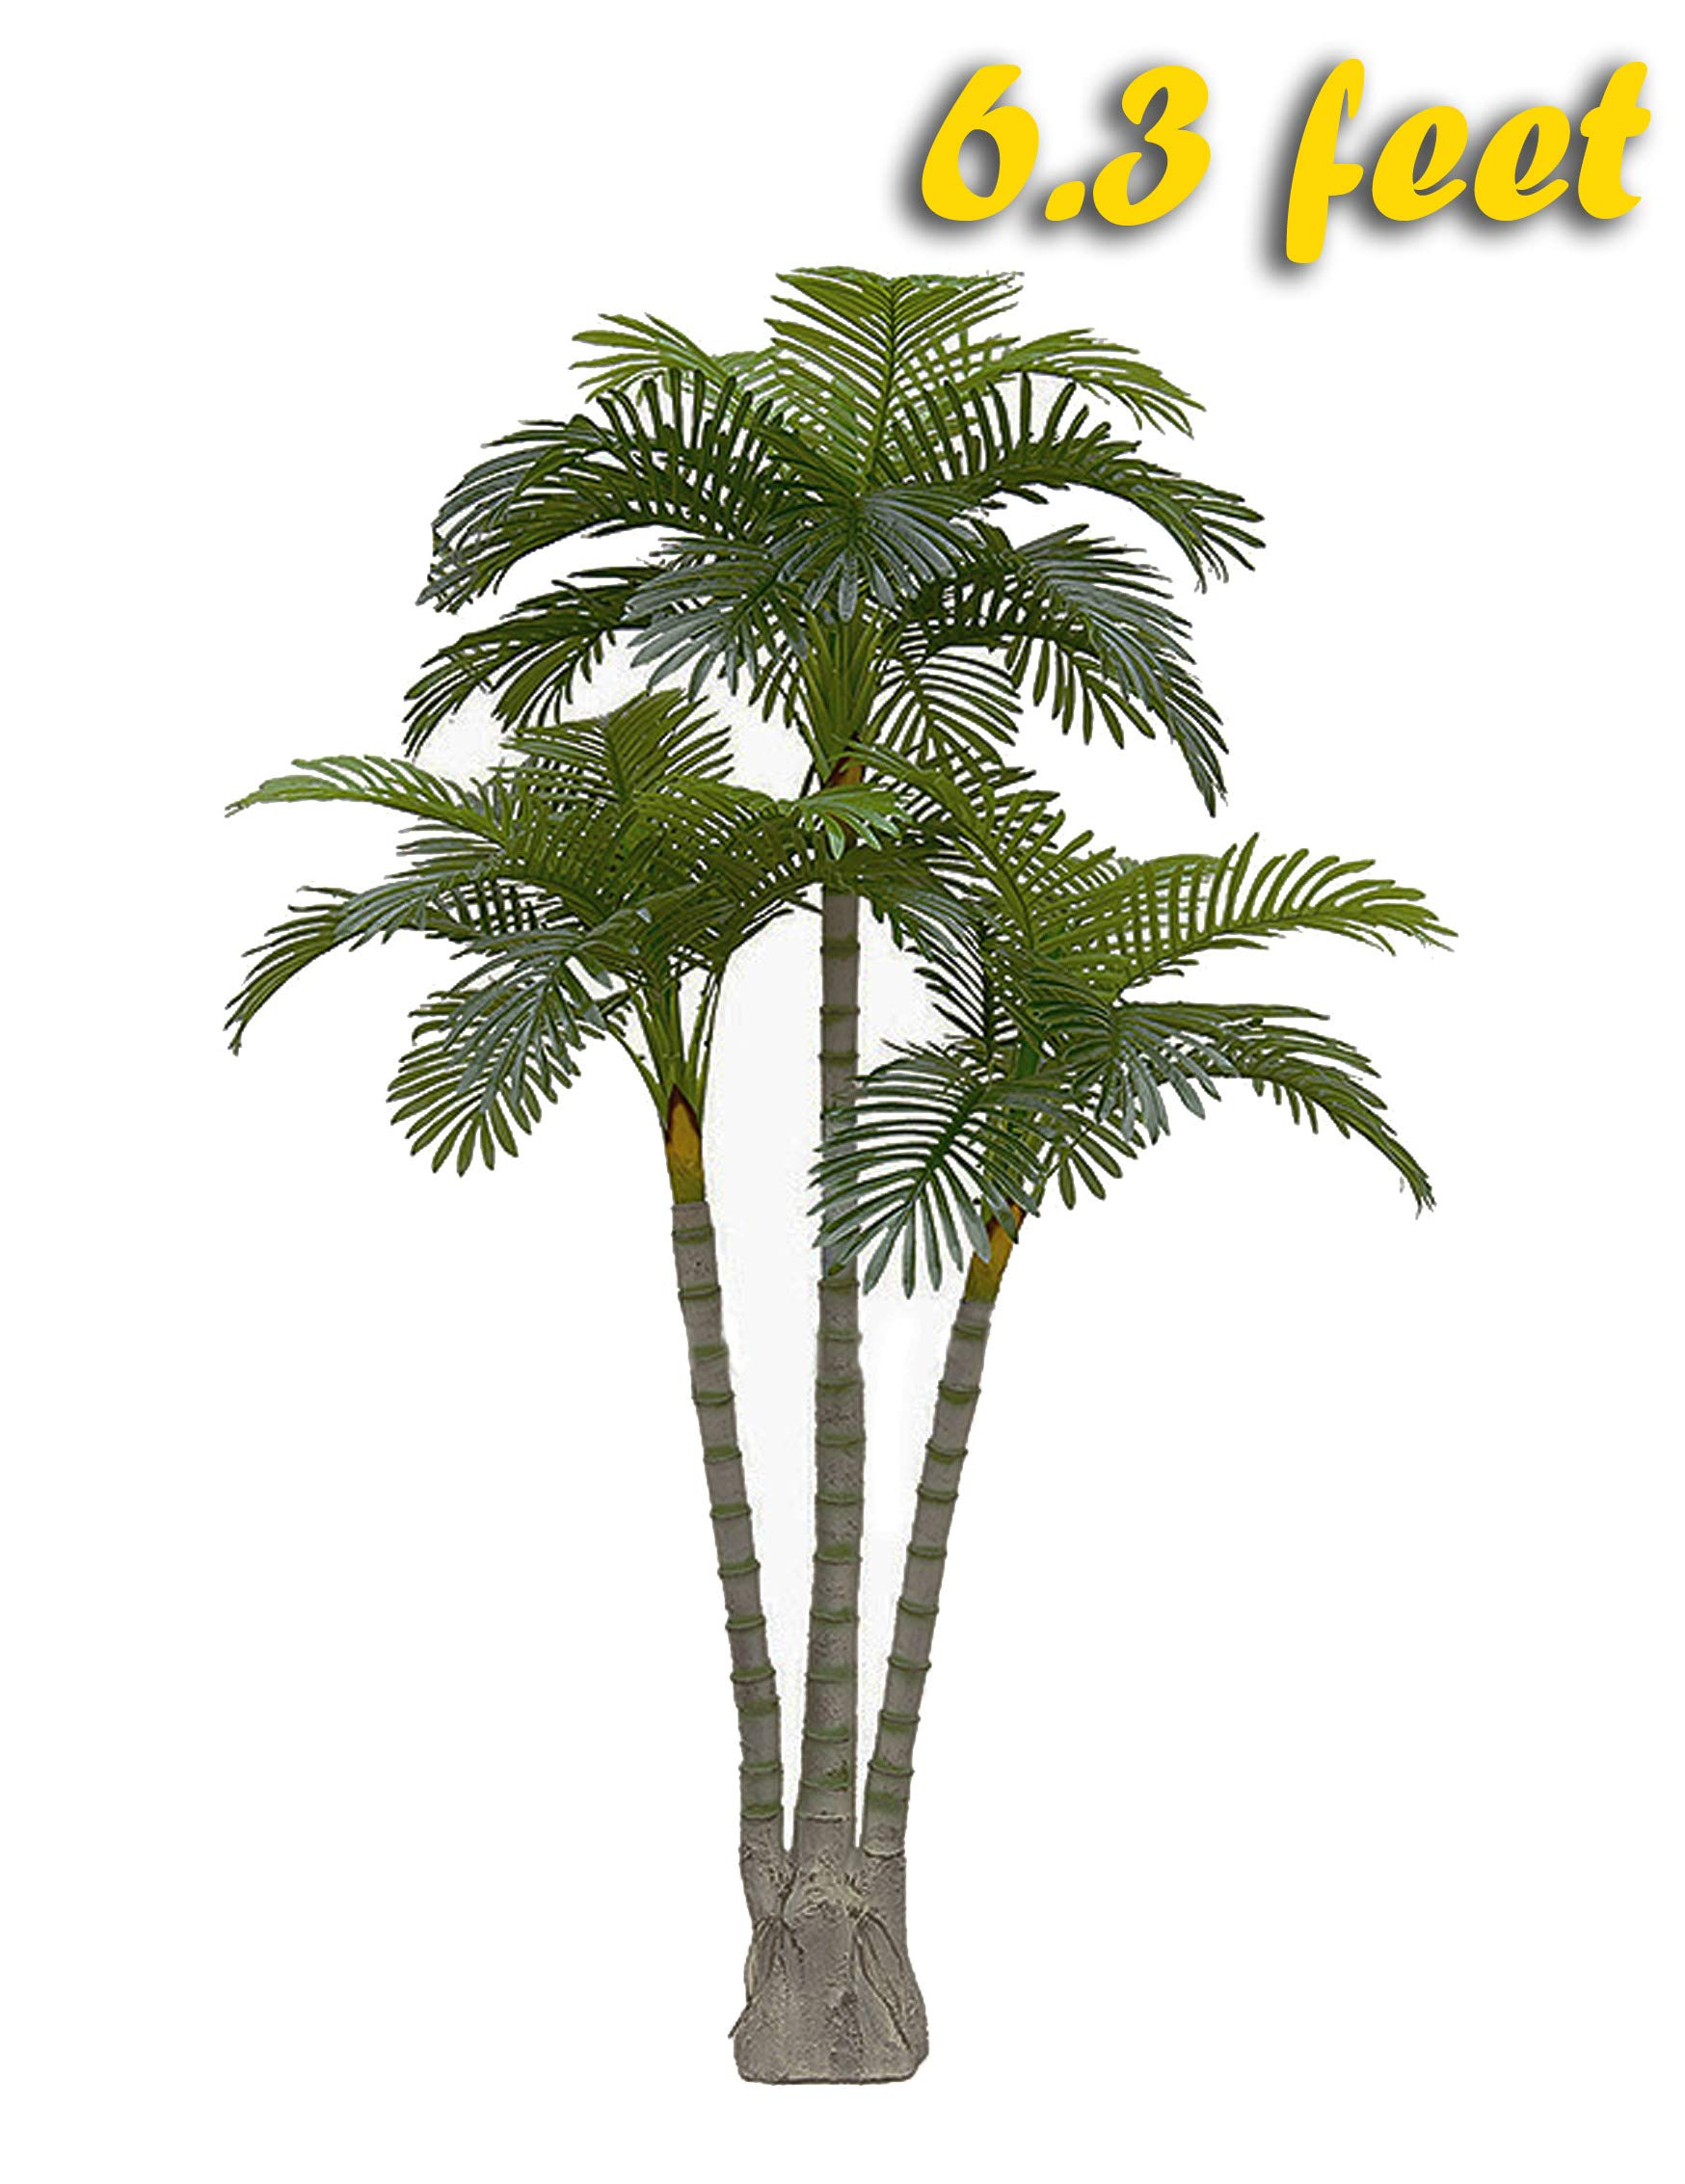 AMERIQUE Gorgeous 6.3 Feet Standable Triple Trunk Artificial Palm Tree, Real Touch Technology, with UV Protection, Super Quality, Green by AMERIQUE